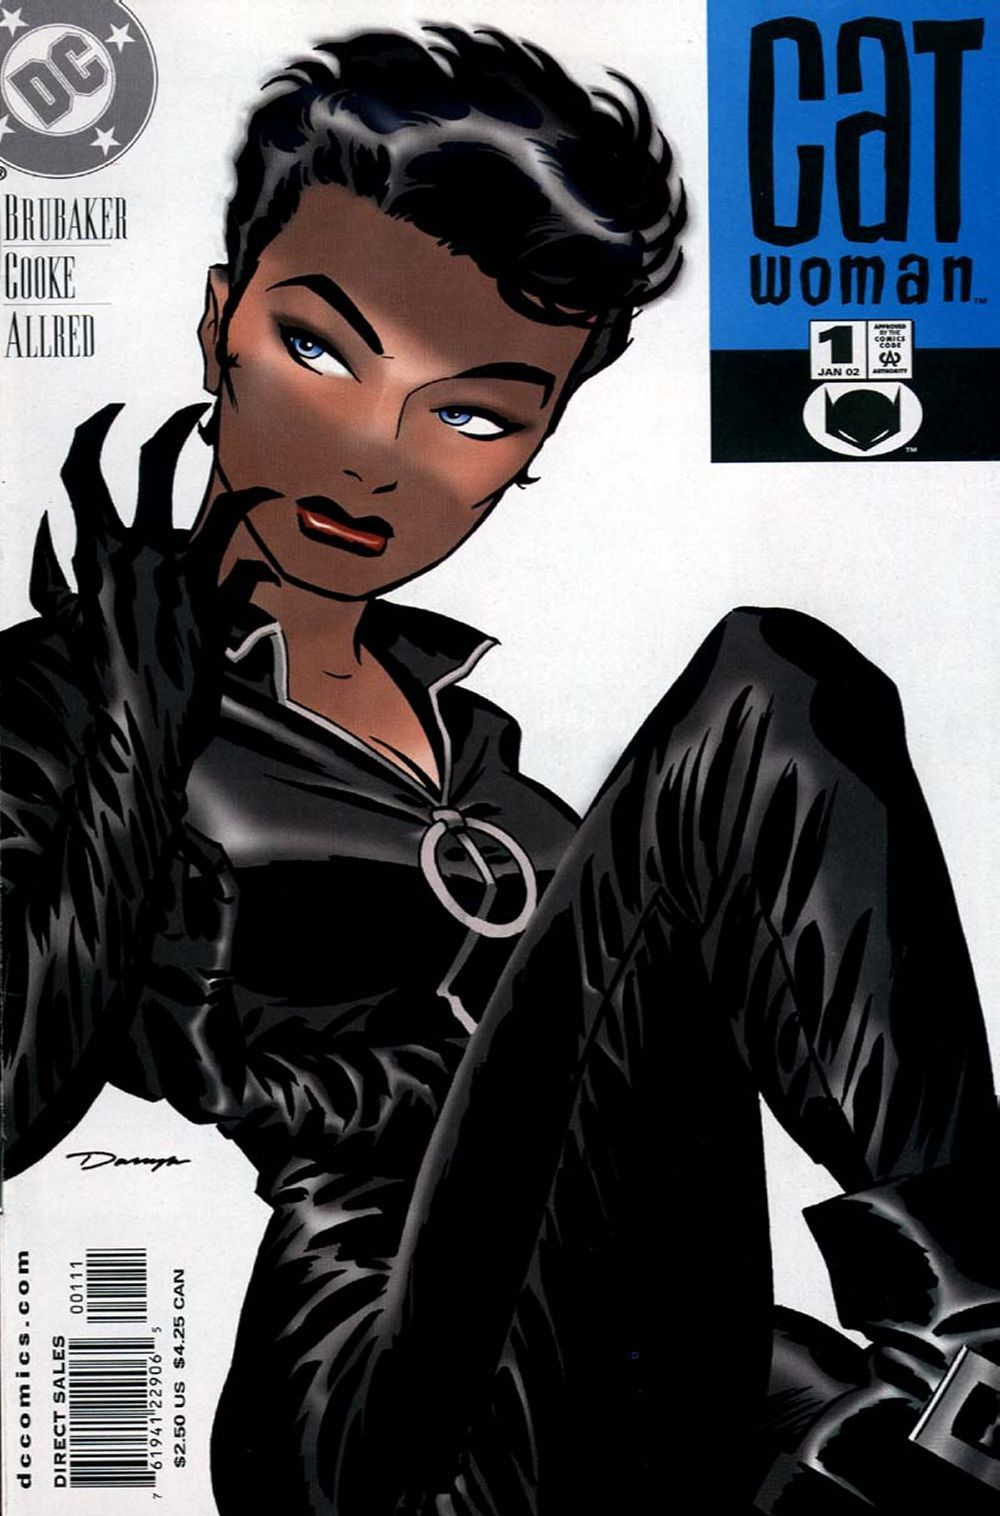 2018-12-10 08:49:17 - comicbookcovers catwoman 1 january 2002 last-homo-on-the-left http://www.neofic.com